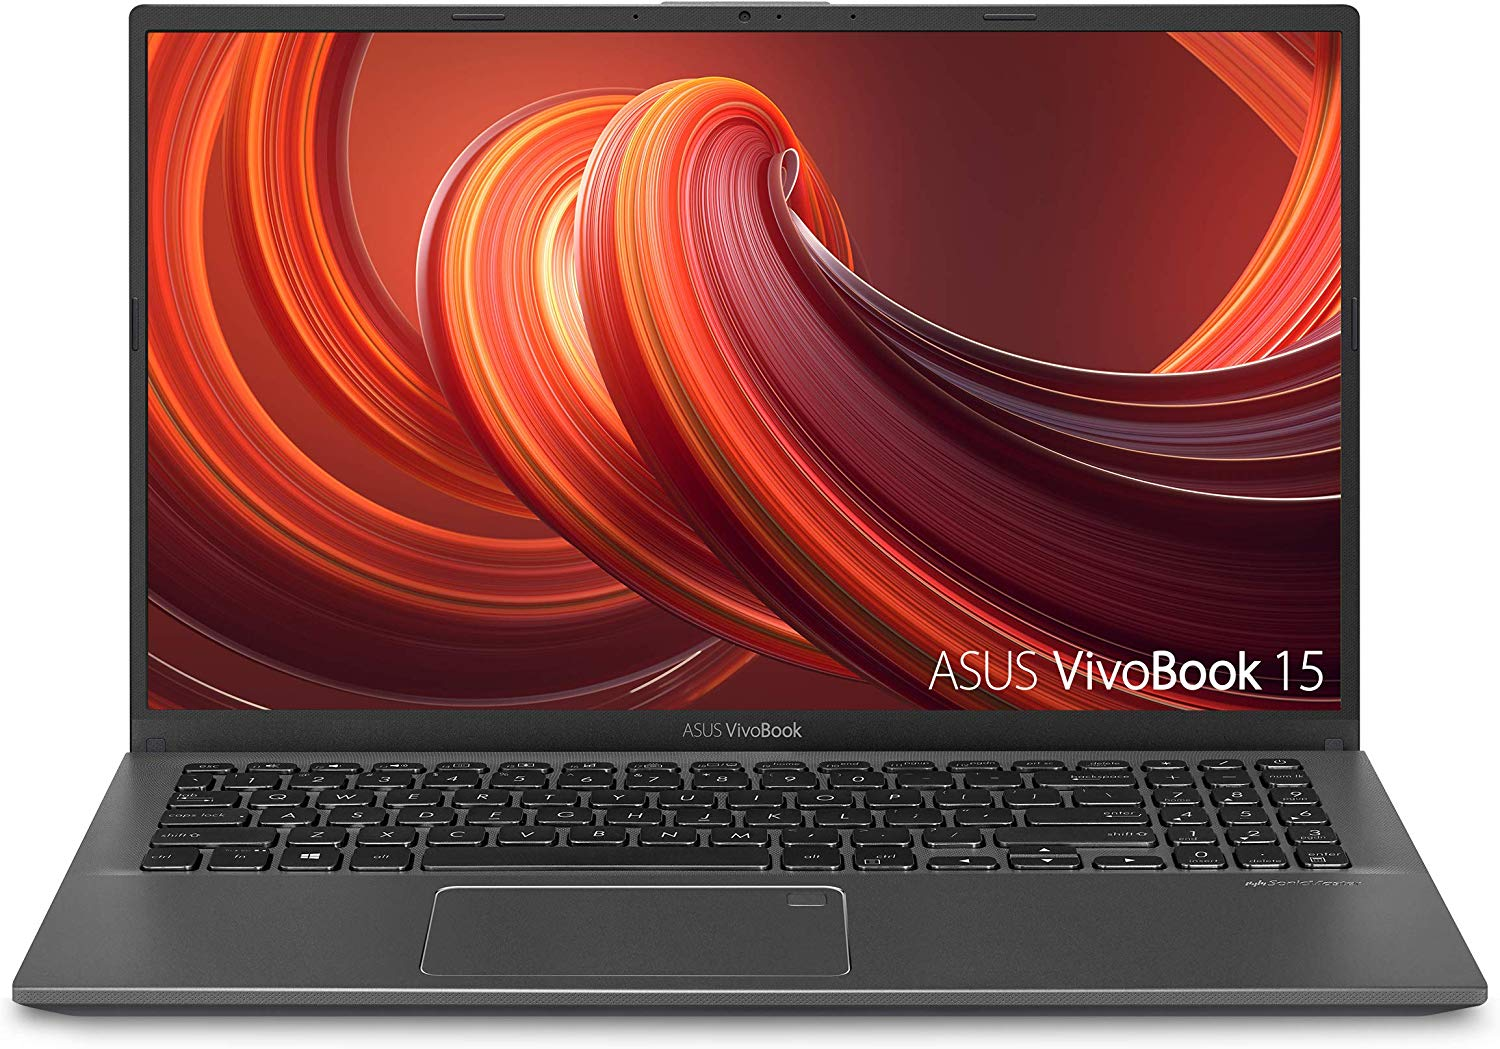 "ASUS VivoBook 15 Thin and Light Laptop, 15.6"" Full HD, AMD Quad Core R5-3500U CPU, 8GB DDR4 RAM, 256GB PCIe SSD, AMD Radeon Vega 8 Graphics, Windows 10 Home"